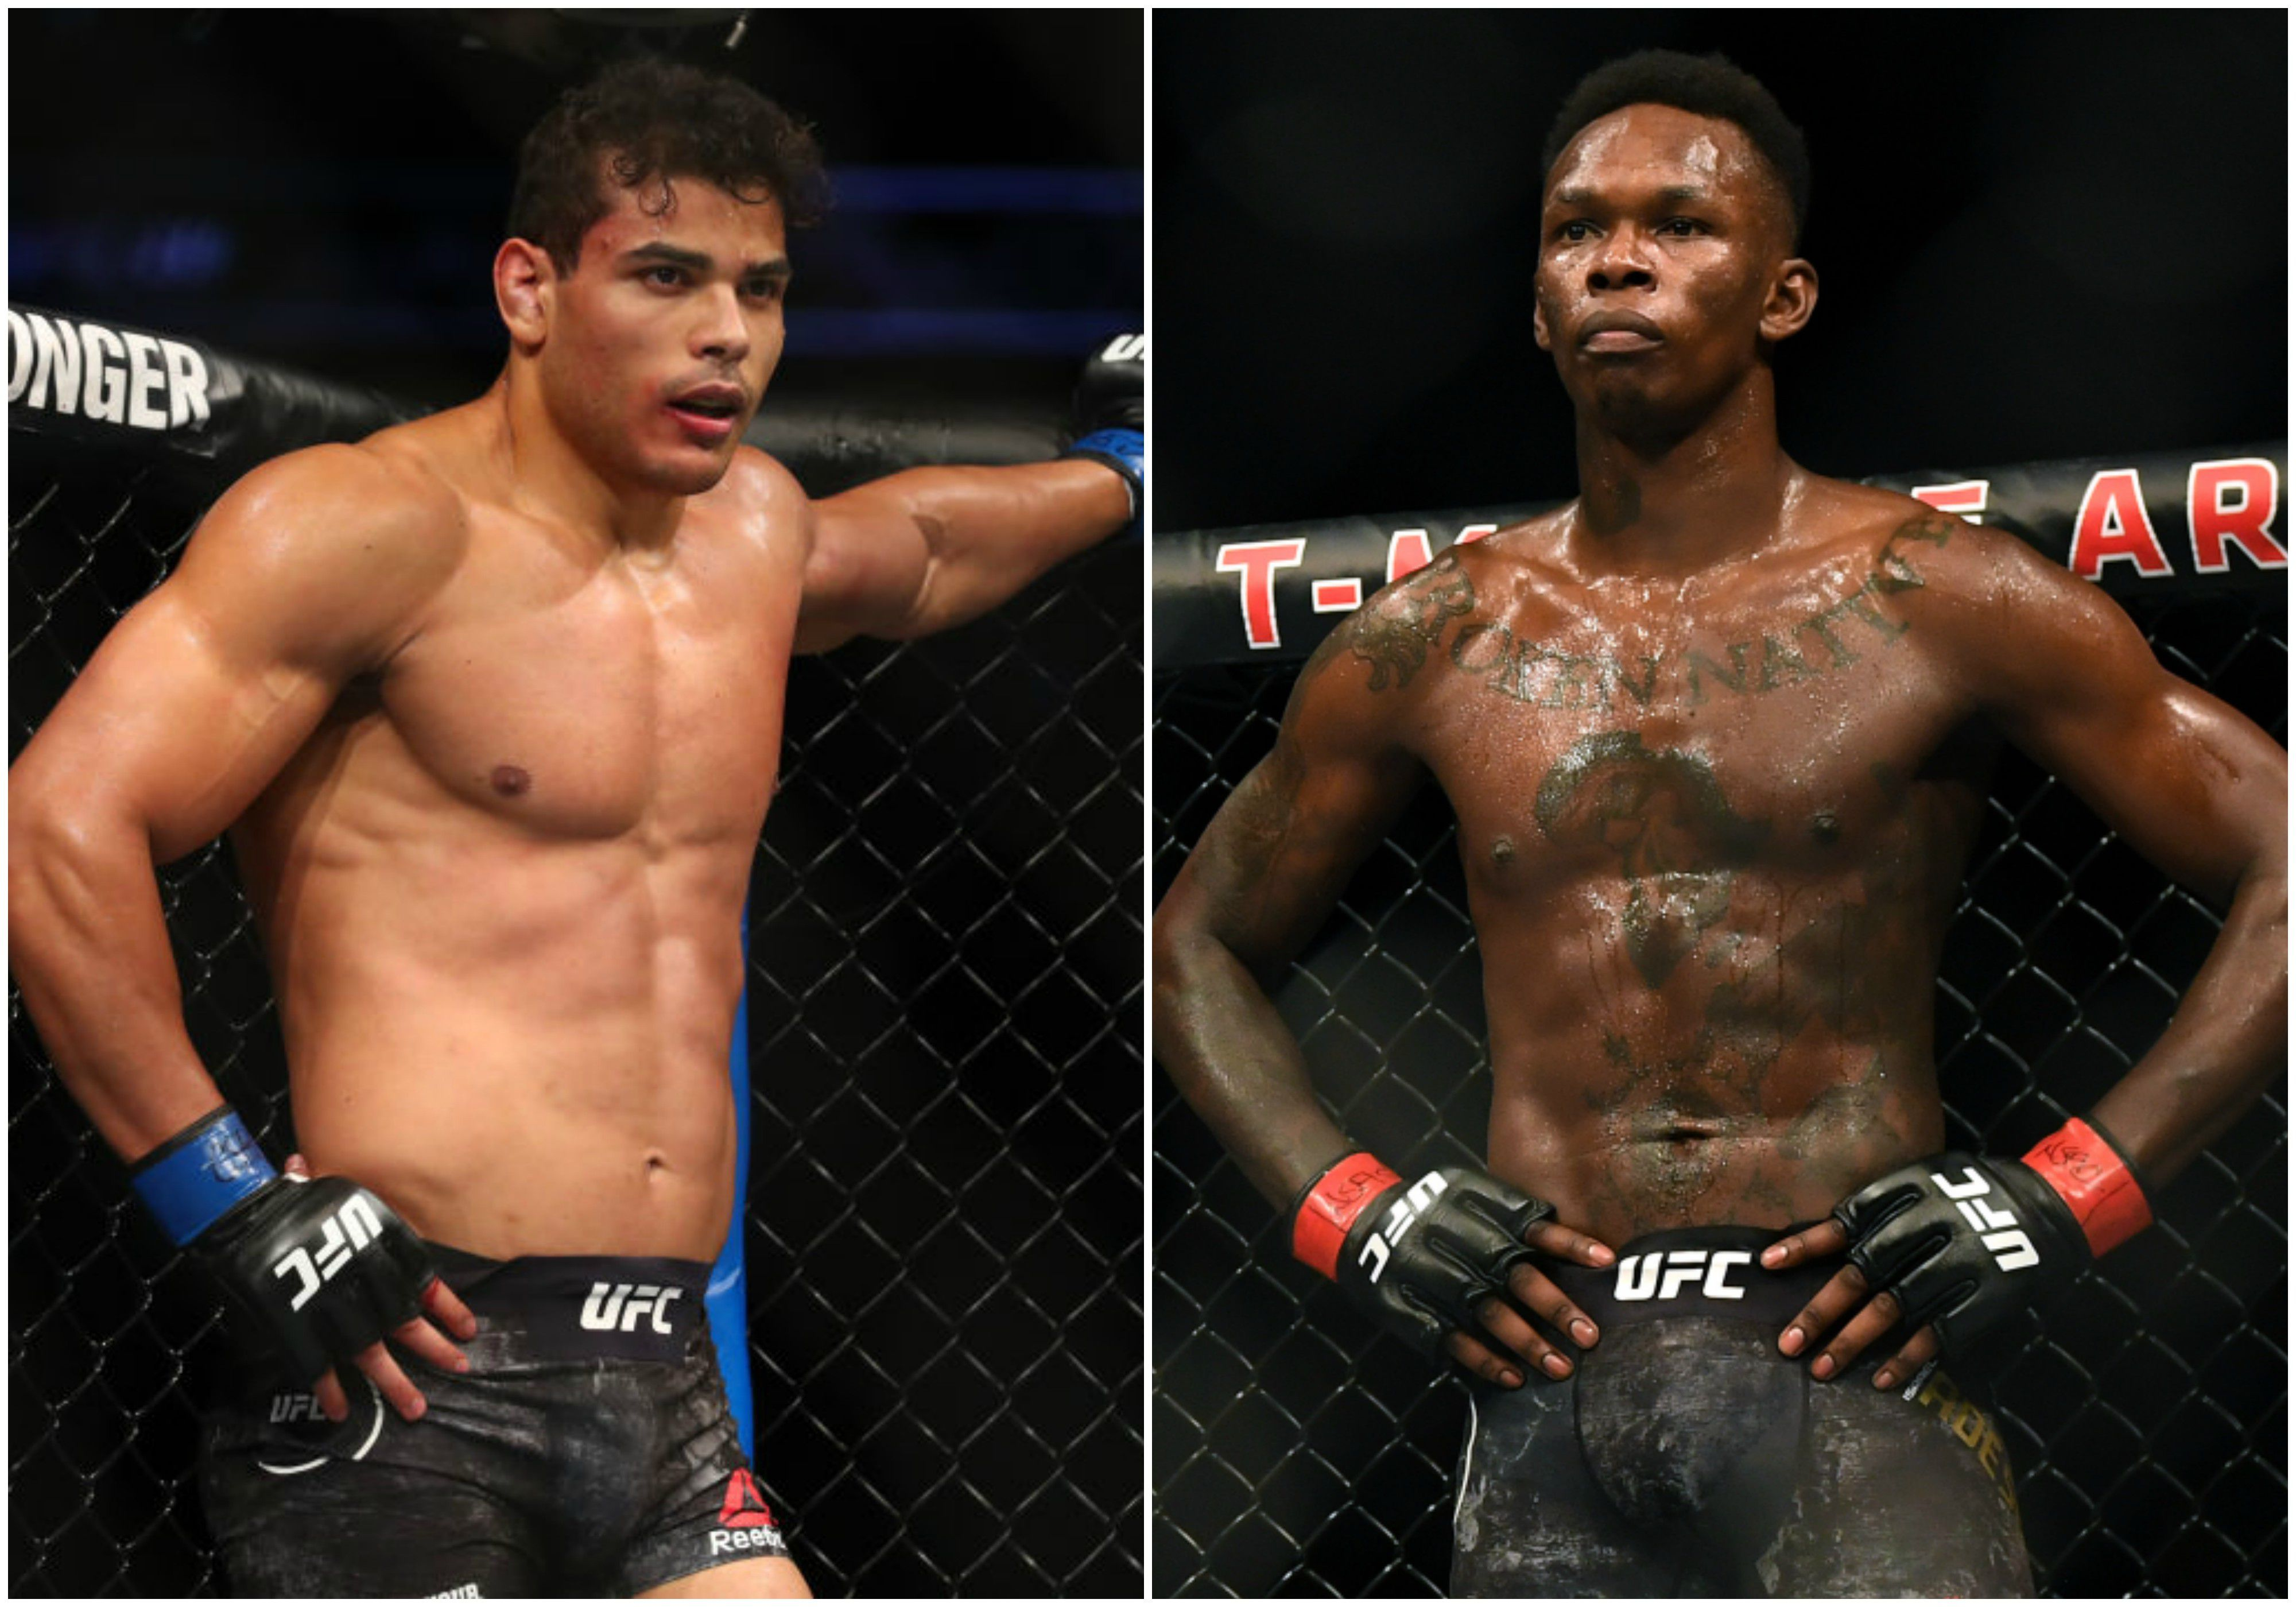 Where Can I Watch Ufc 253 Espn Plus Ppv Cost Fight Card Results Live Updates Odds Adesanya Vs Costa Reyes Vs Blachowicz More 9 26 2020 Oregonlive Com